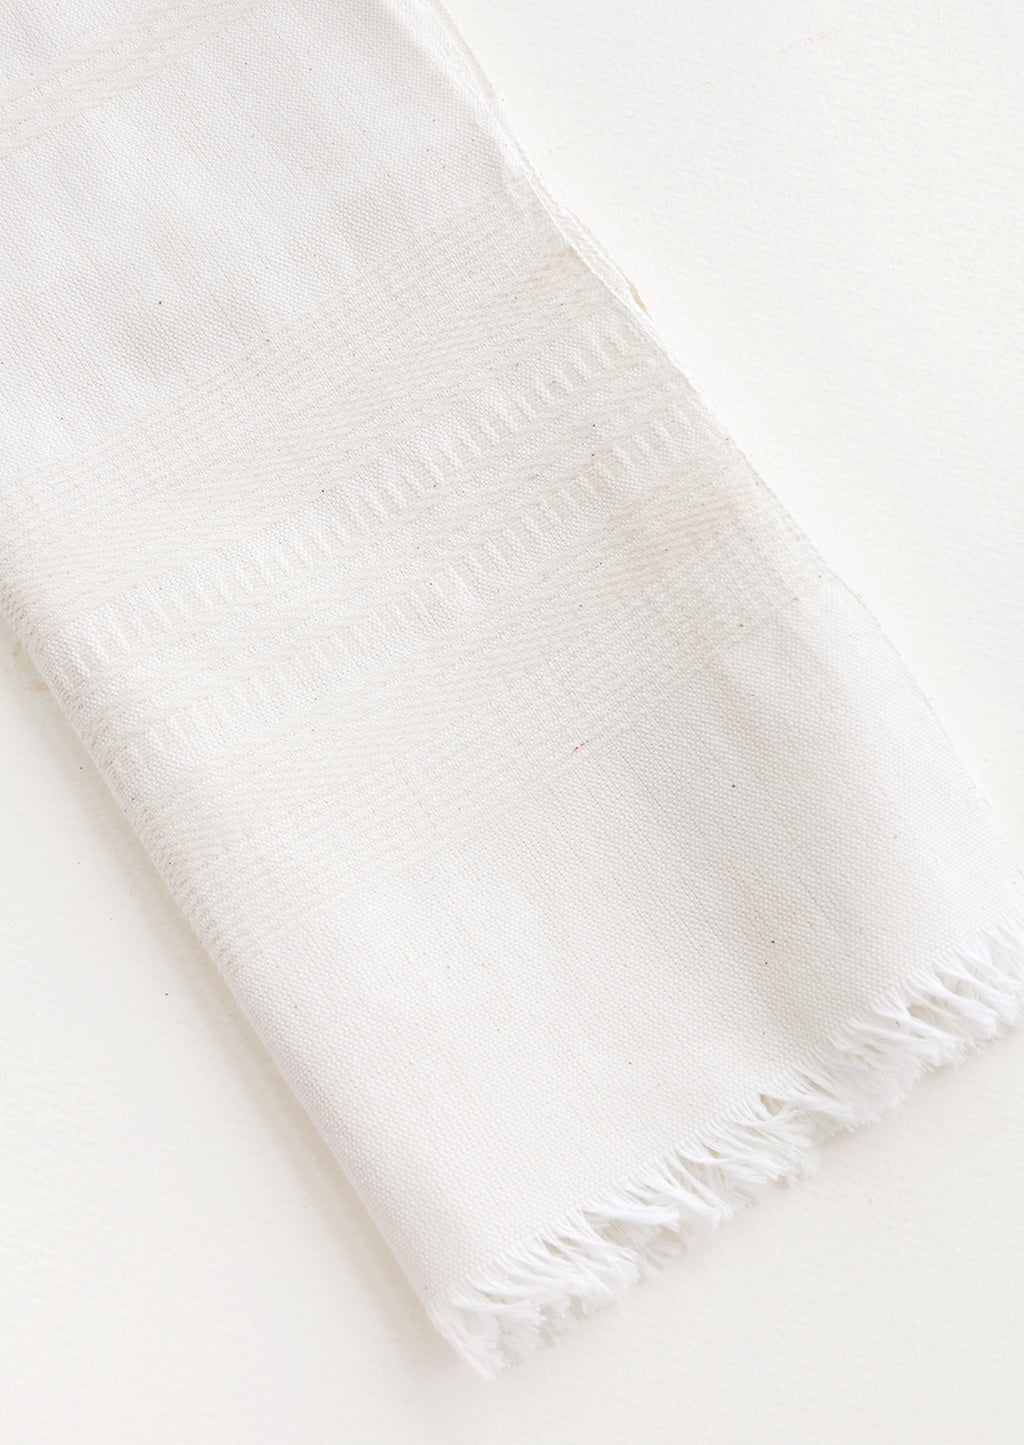 Unbleached: A white cotton towel with fringed edge.